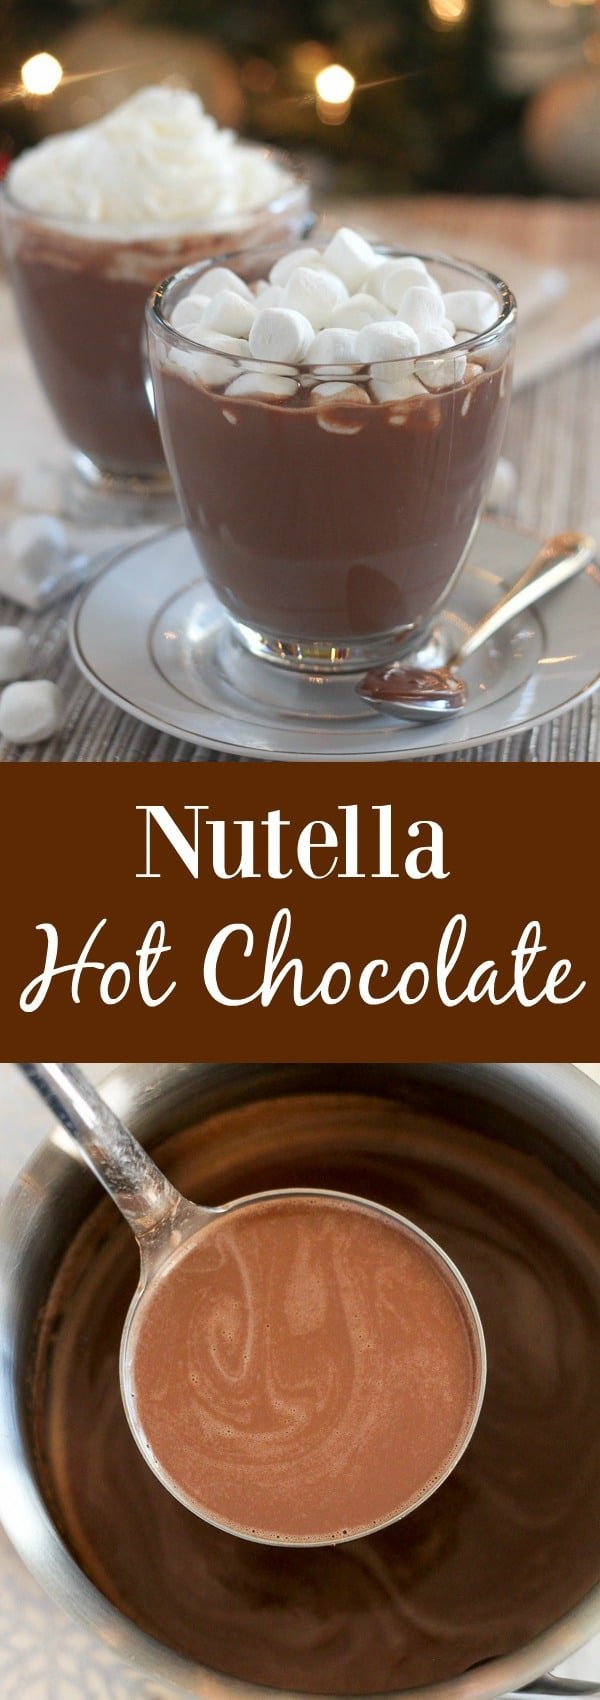 Nutella Hot Chocolate in a mug.